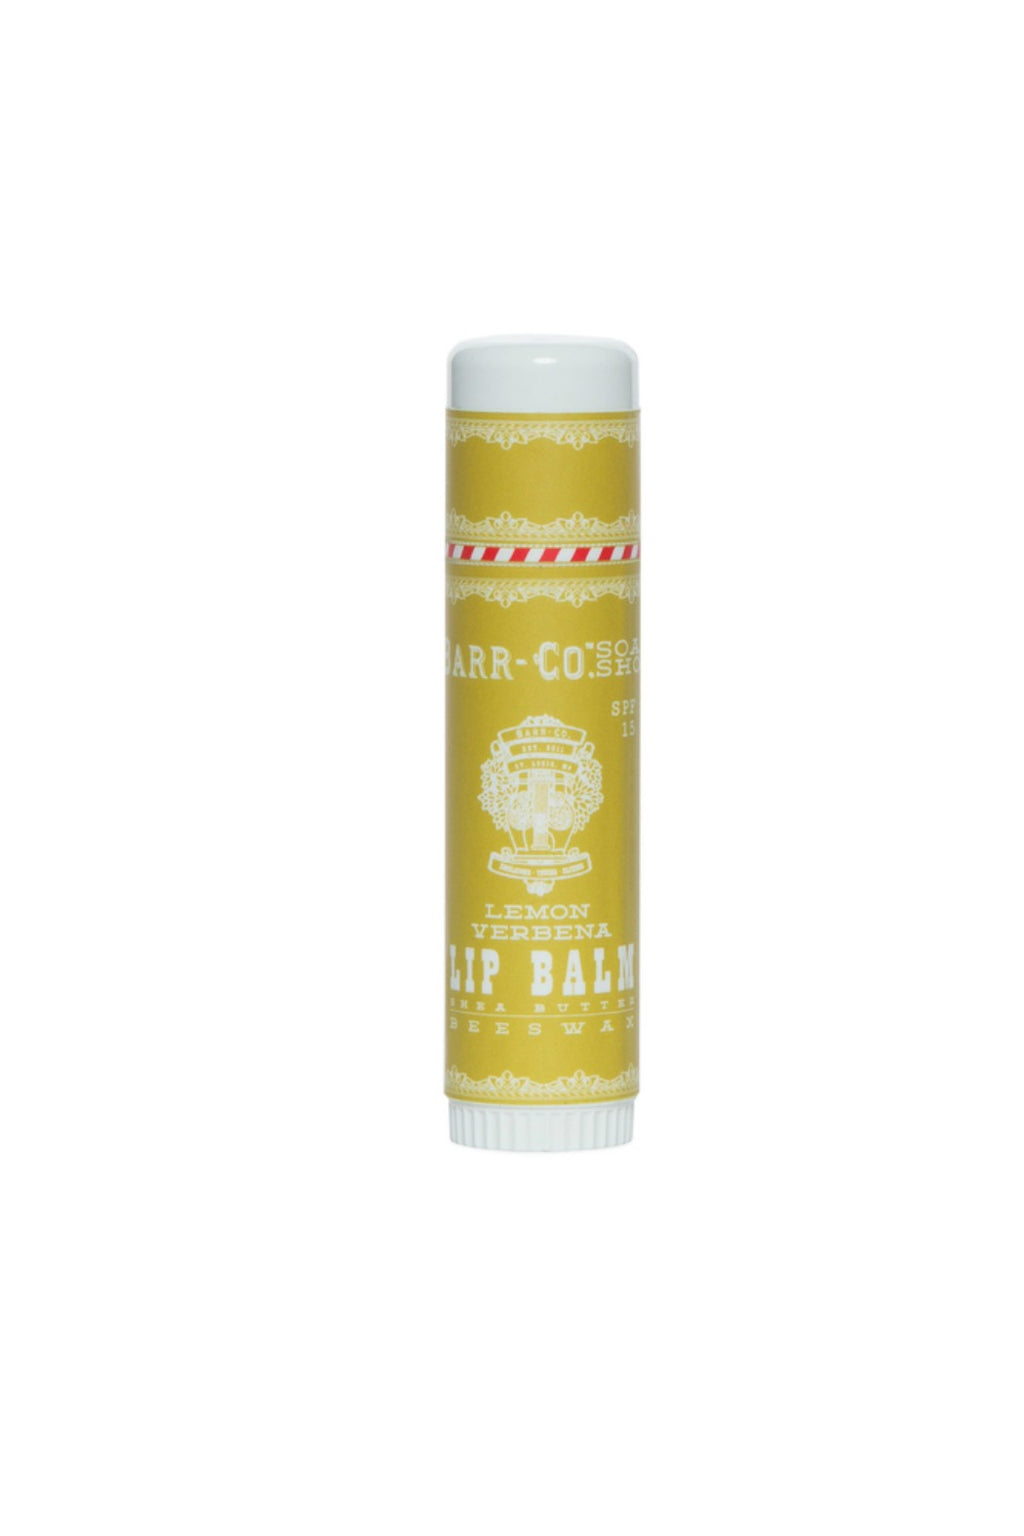 Barr-Co. Lip Balm - Lemon Verbena